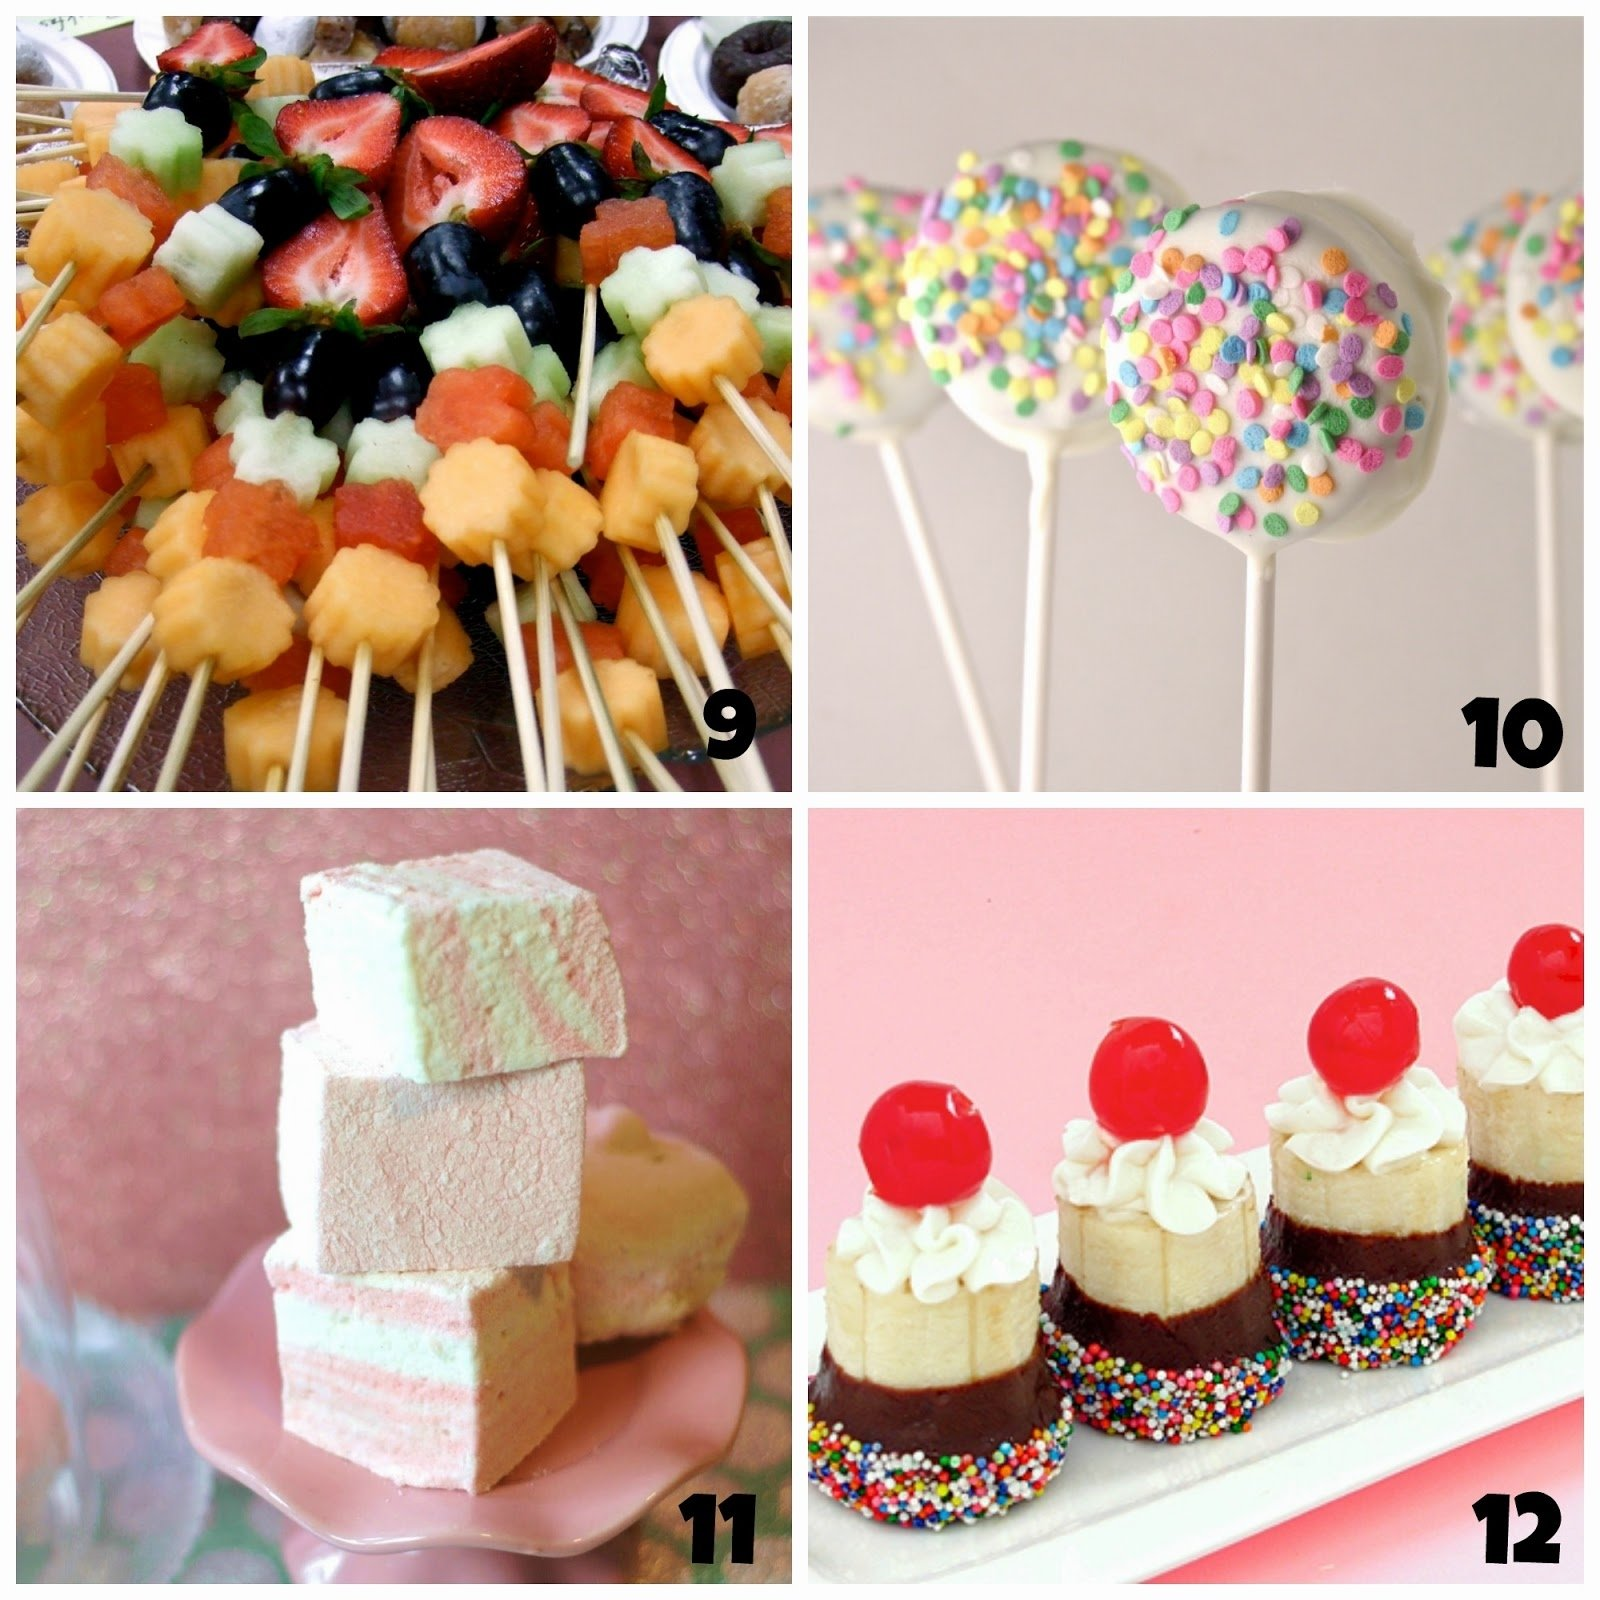 10 Fashionable Fun Party Ideas For Kids whats on 4 kids parties 12 awesome party food ideas 6 2021